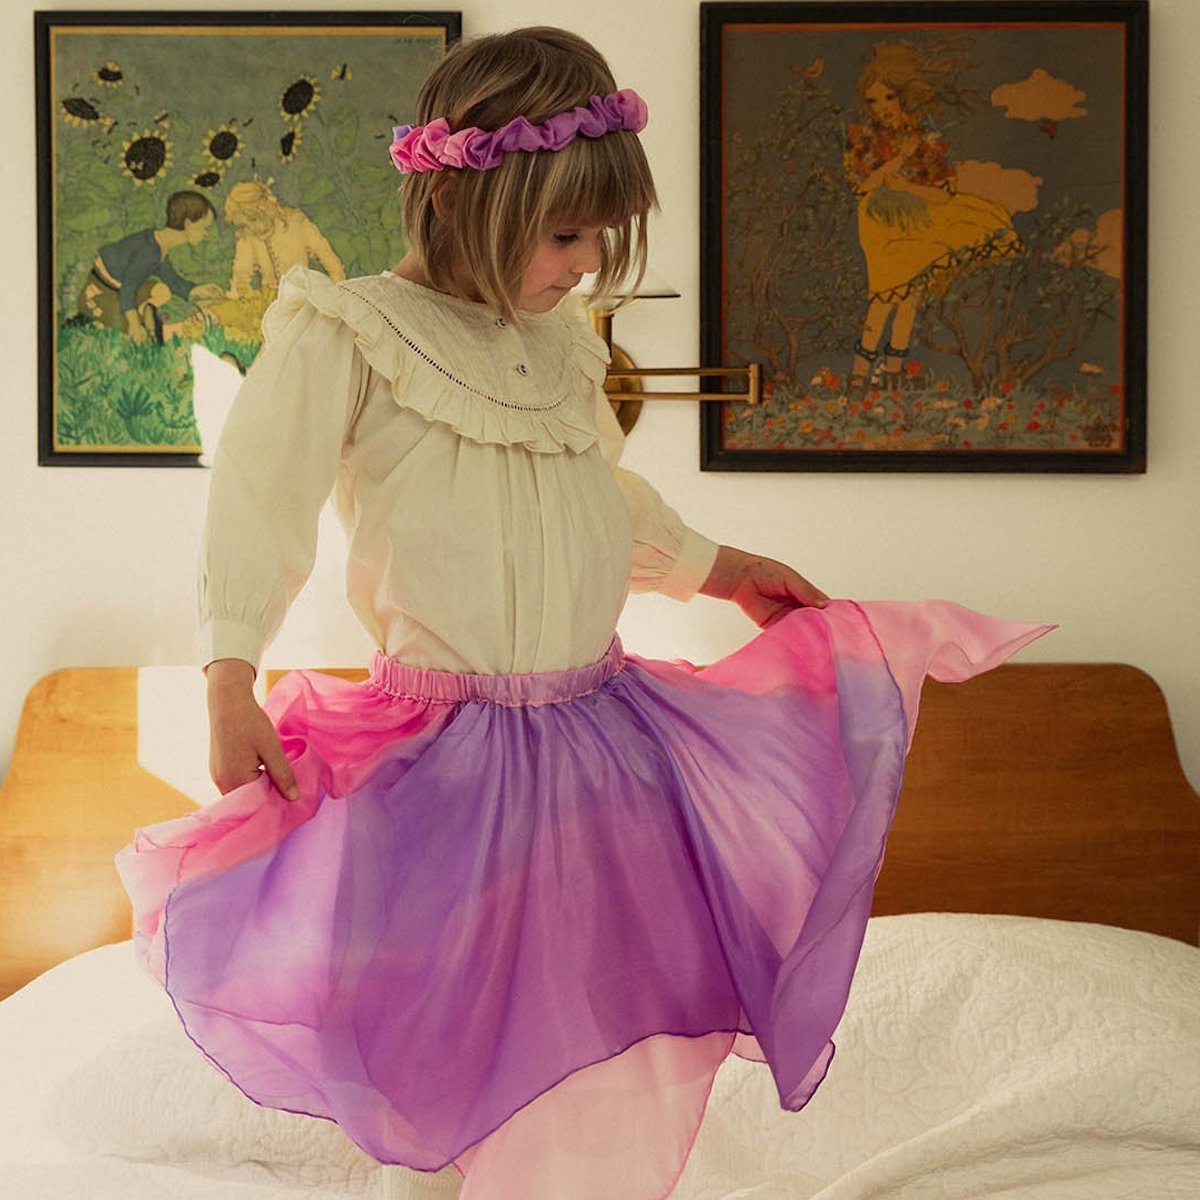 A little girl jumping on a bed wearing a Sarah's Silks pink skirt and flower crown